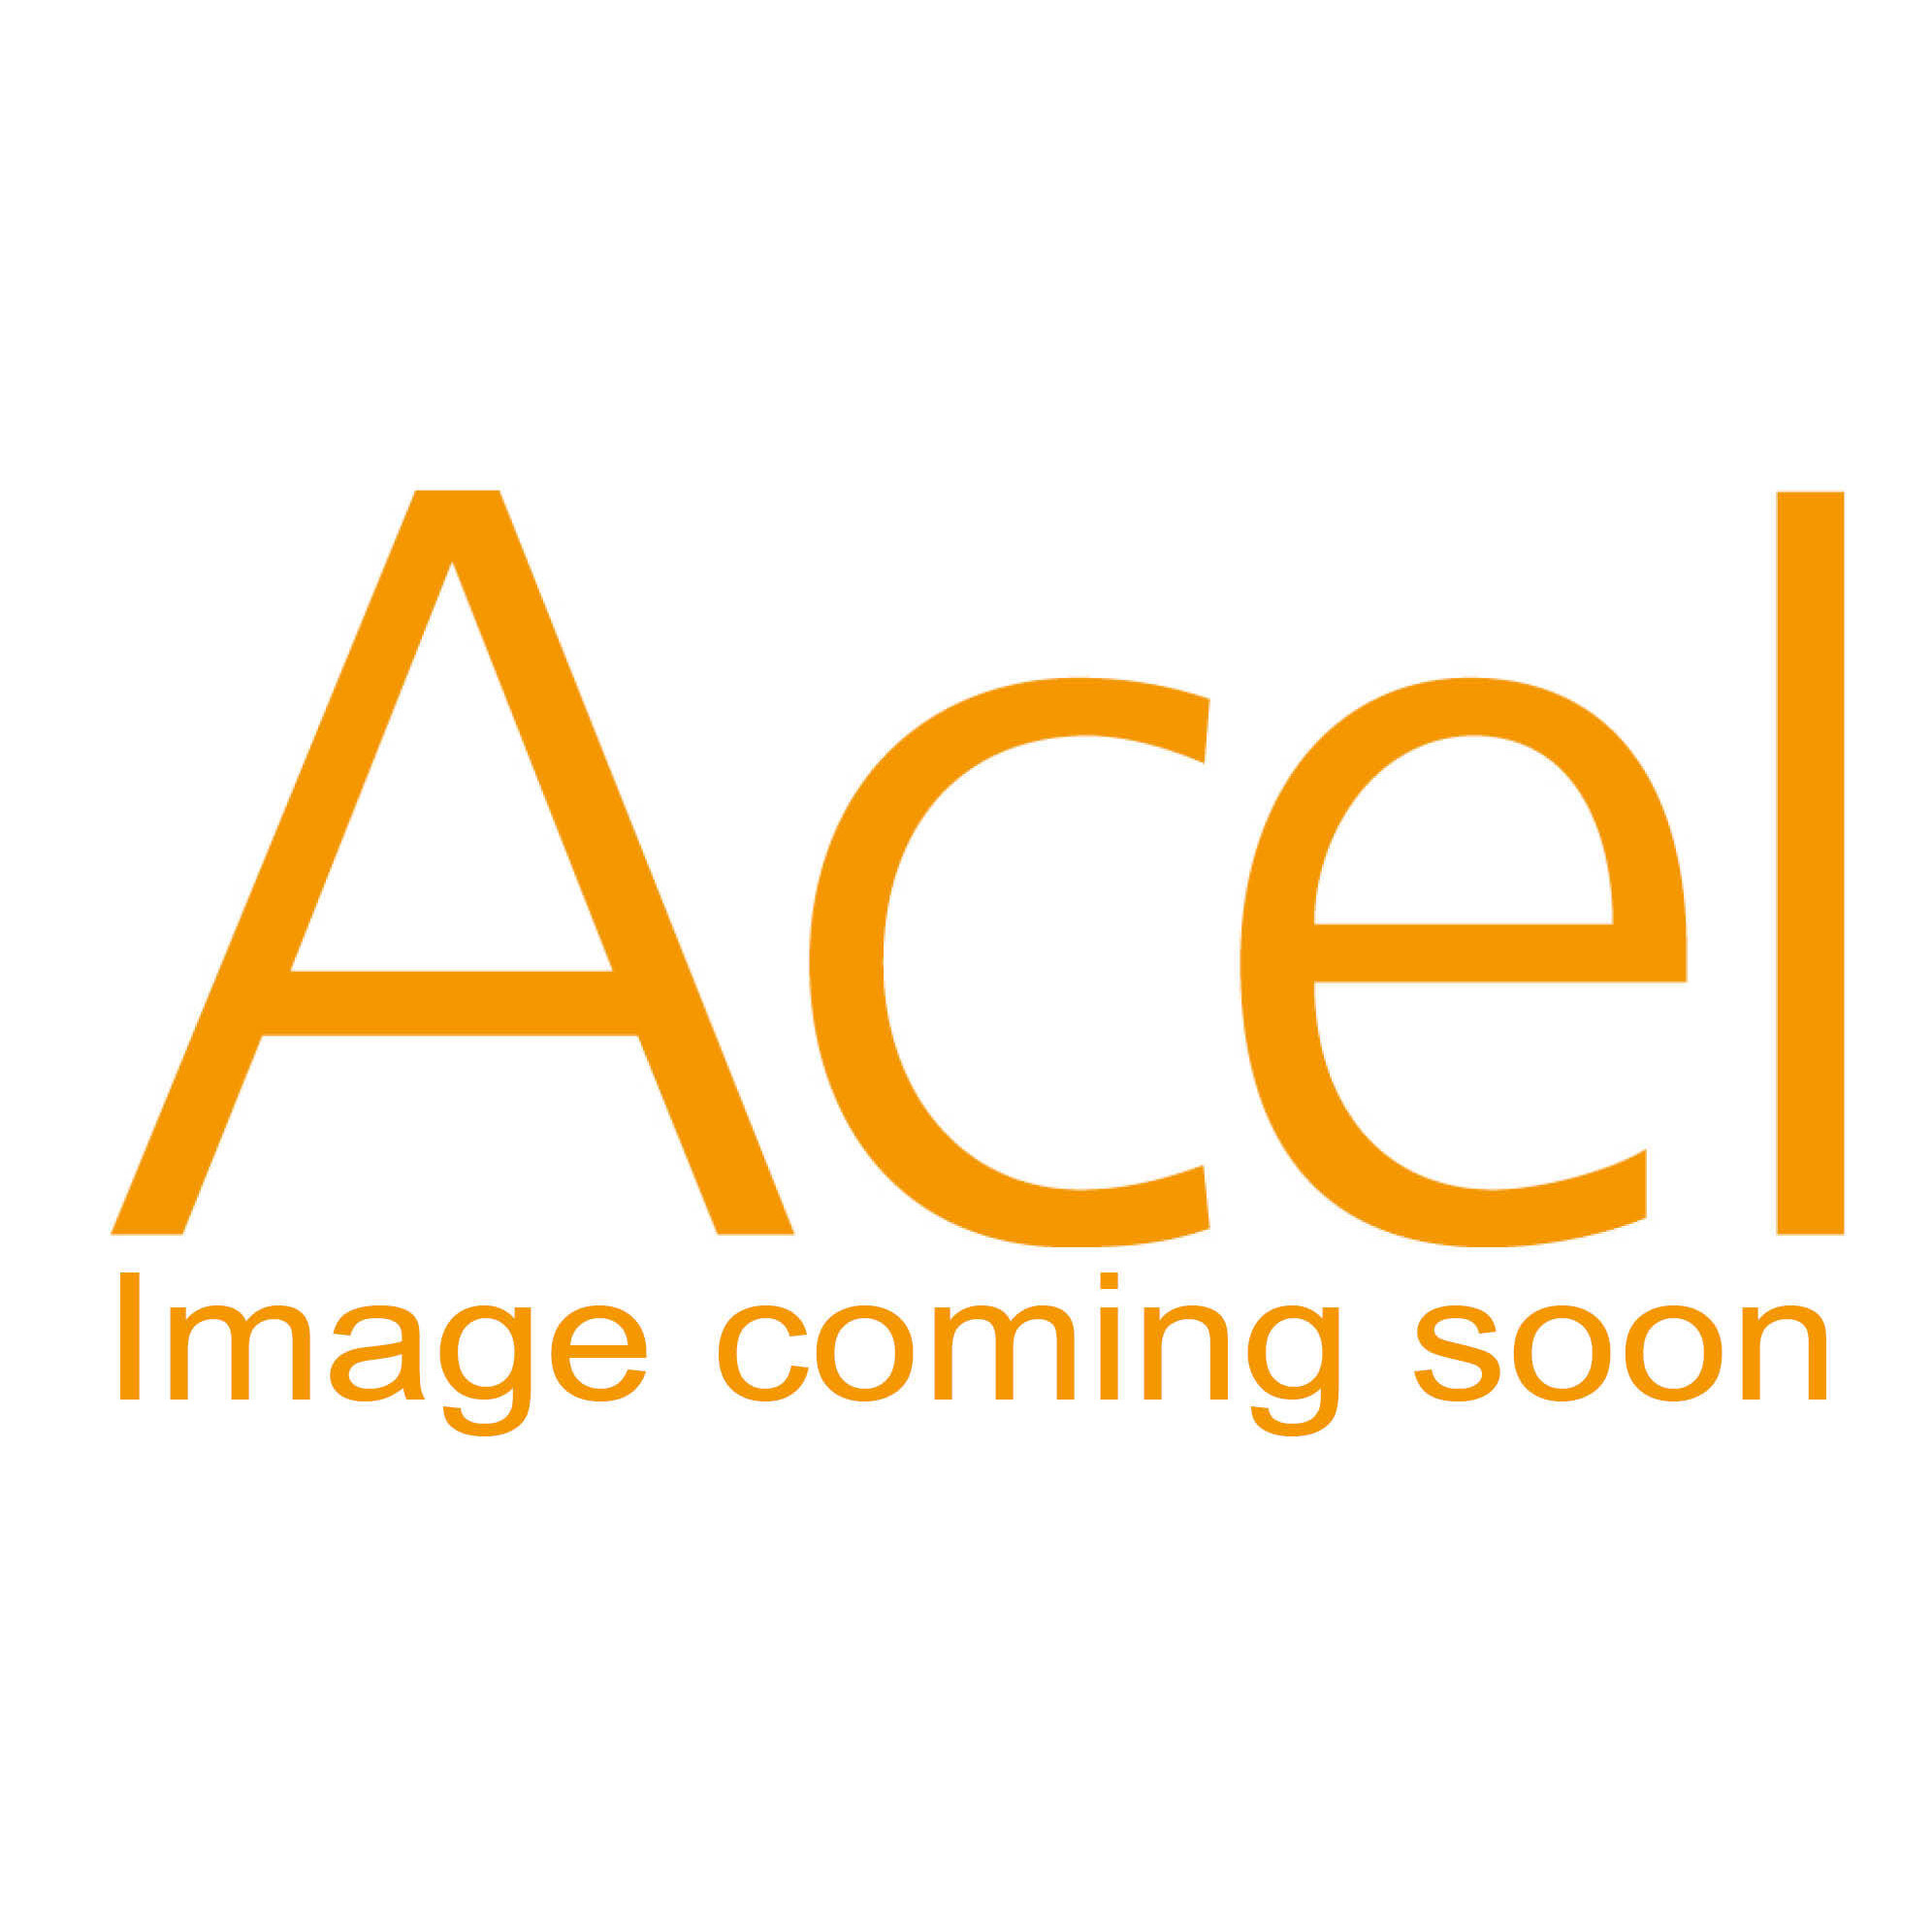 Self Adhesive Vinyl labels - Colour coded and lettered phase markers - Various sizes - 4 sheets of 32